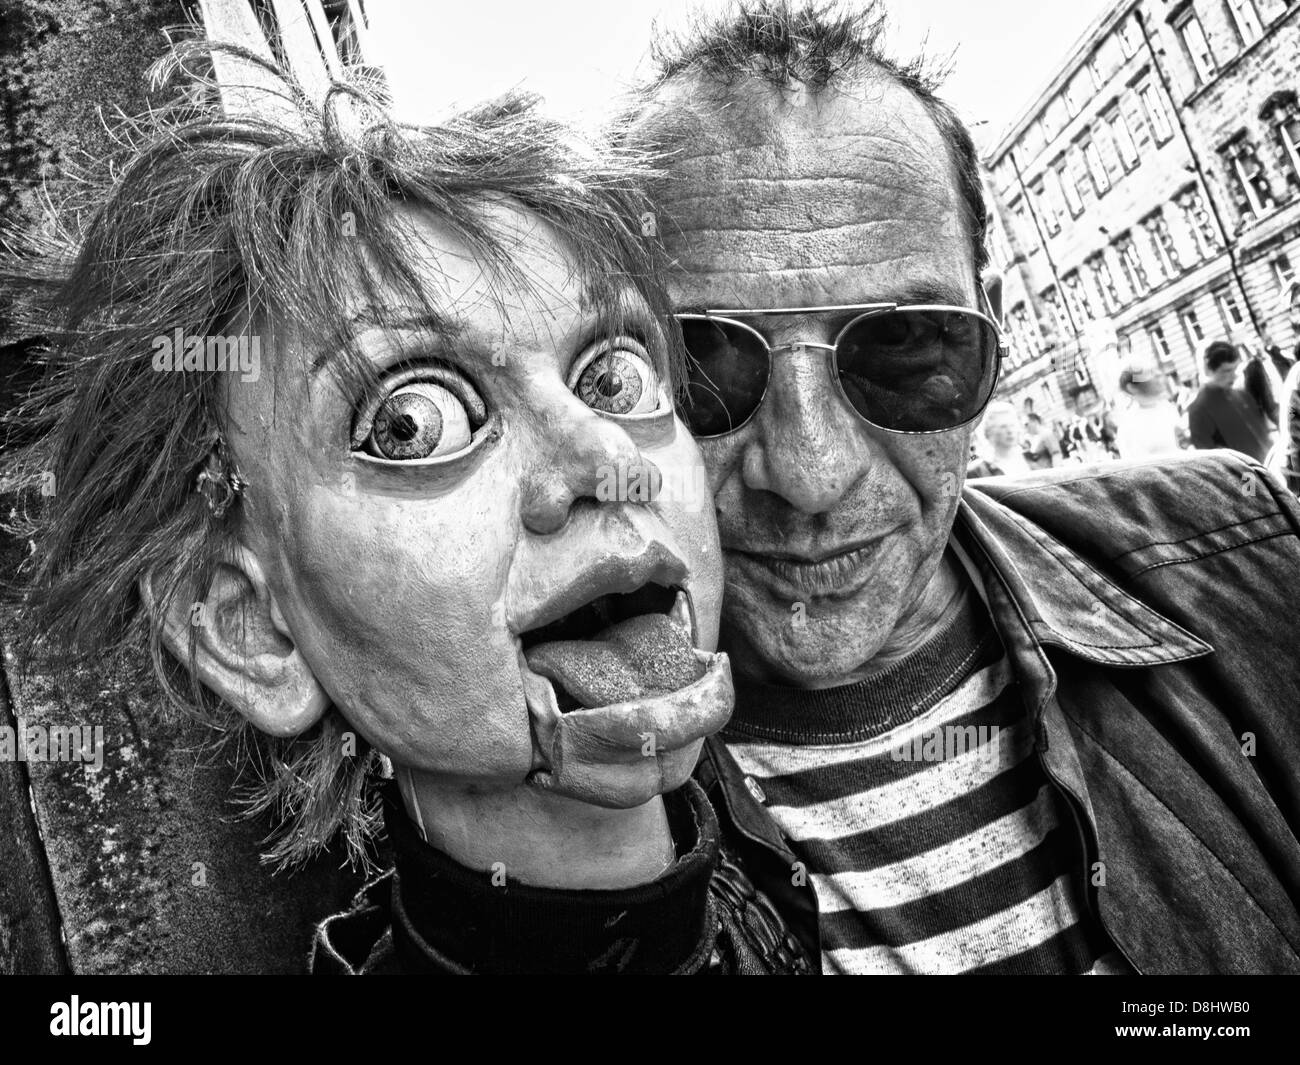 Jud Charlton & Phillis,Ventriloquist, Edinburgh Festival Fringe Act, Scotland, UK, EH1 1QS - Stock Image